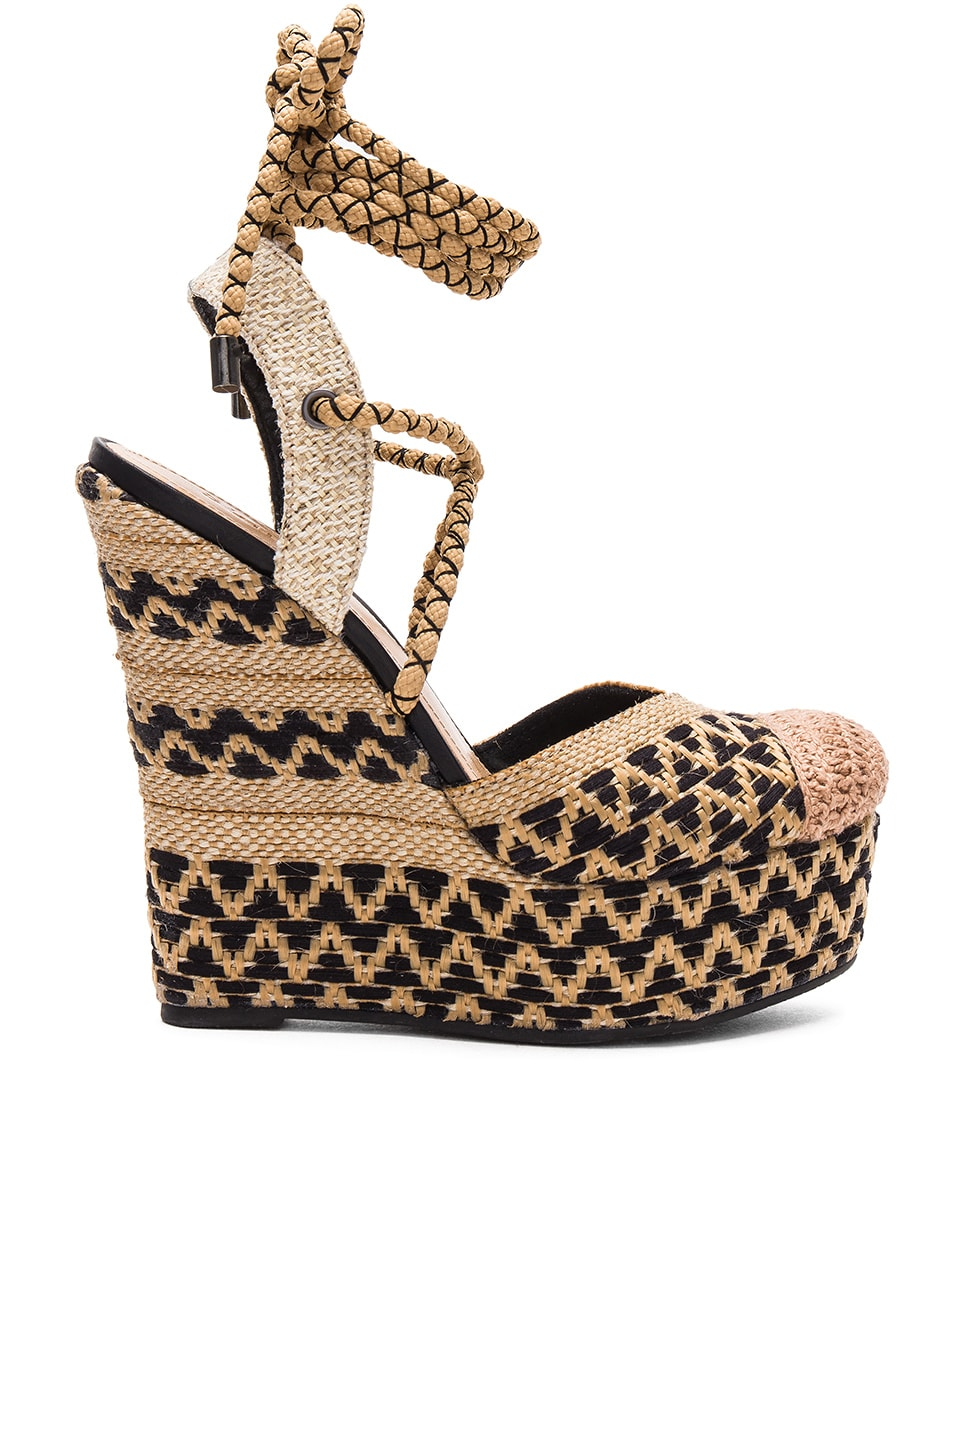 WOMAN AMANDINHA WOVEN ESPDARILLE WEDGE SANDALS BEIGE